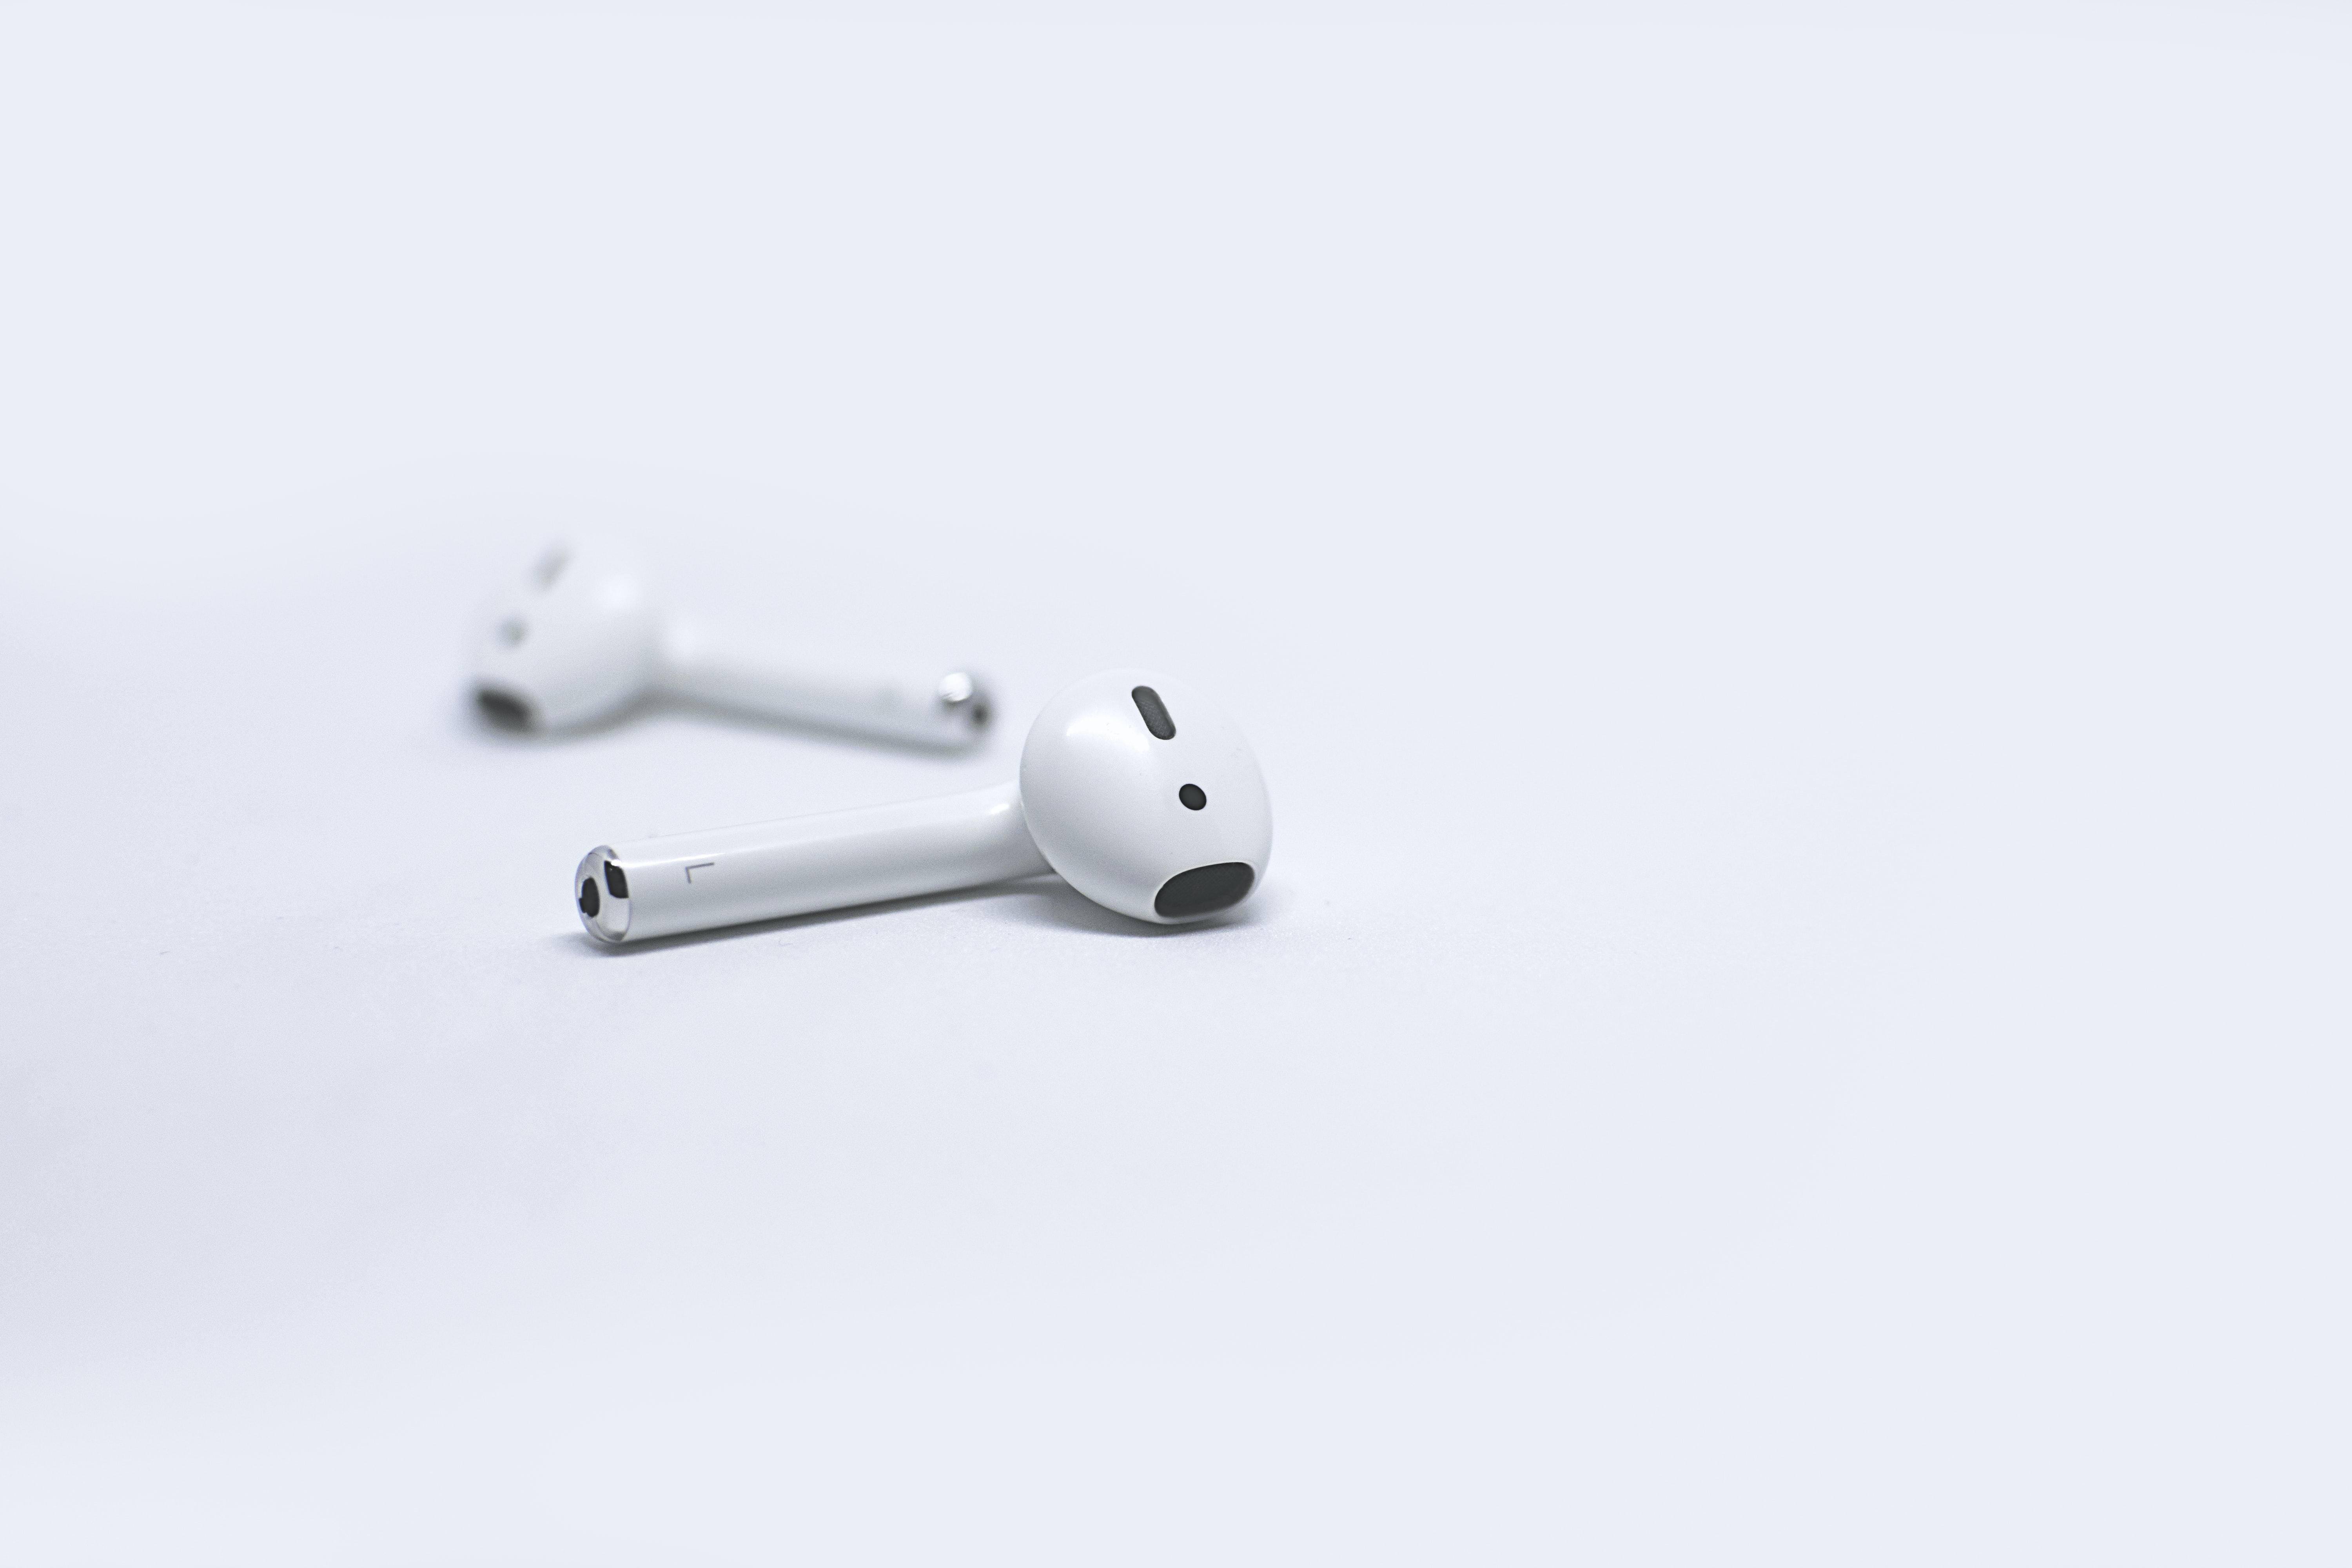 White iPhone wireless earbuds on white surface